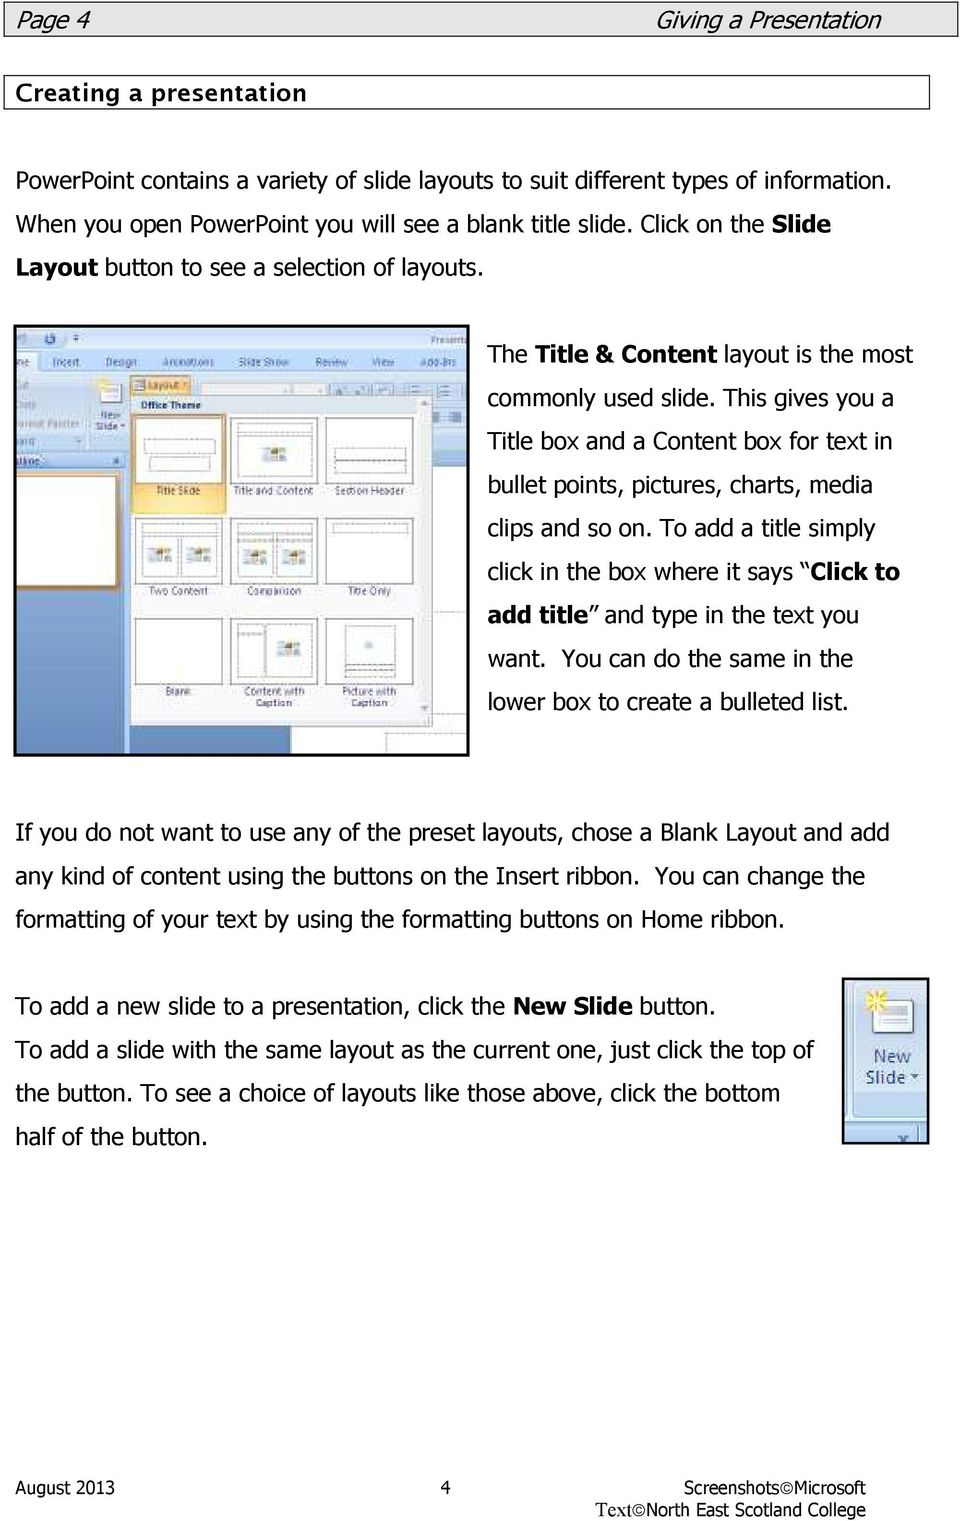 This gives you a Title box and a Content box for text in bullet points, pictures, charts, media clips and so on.